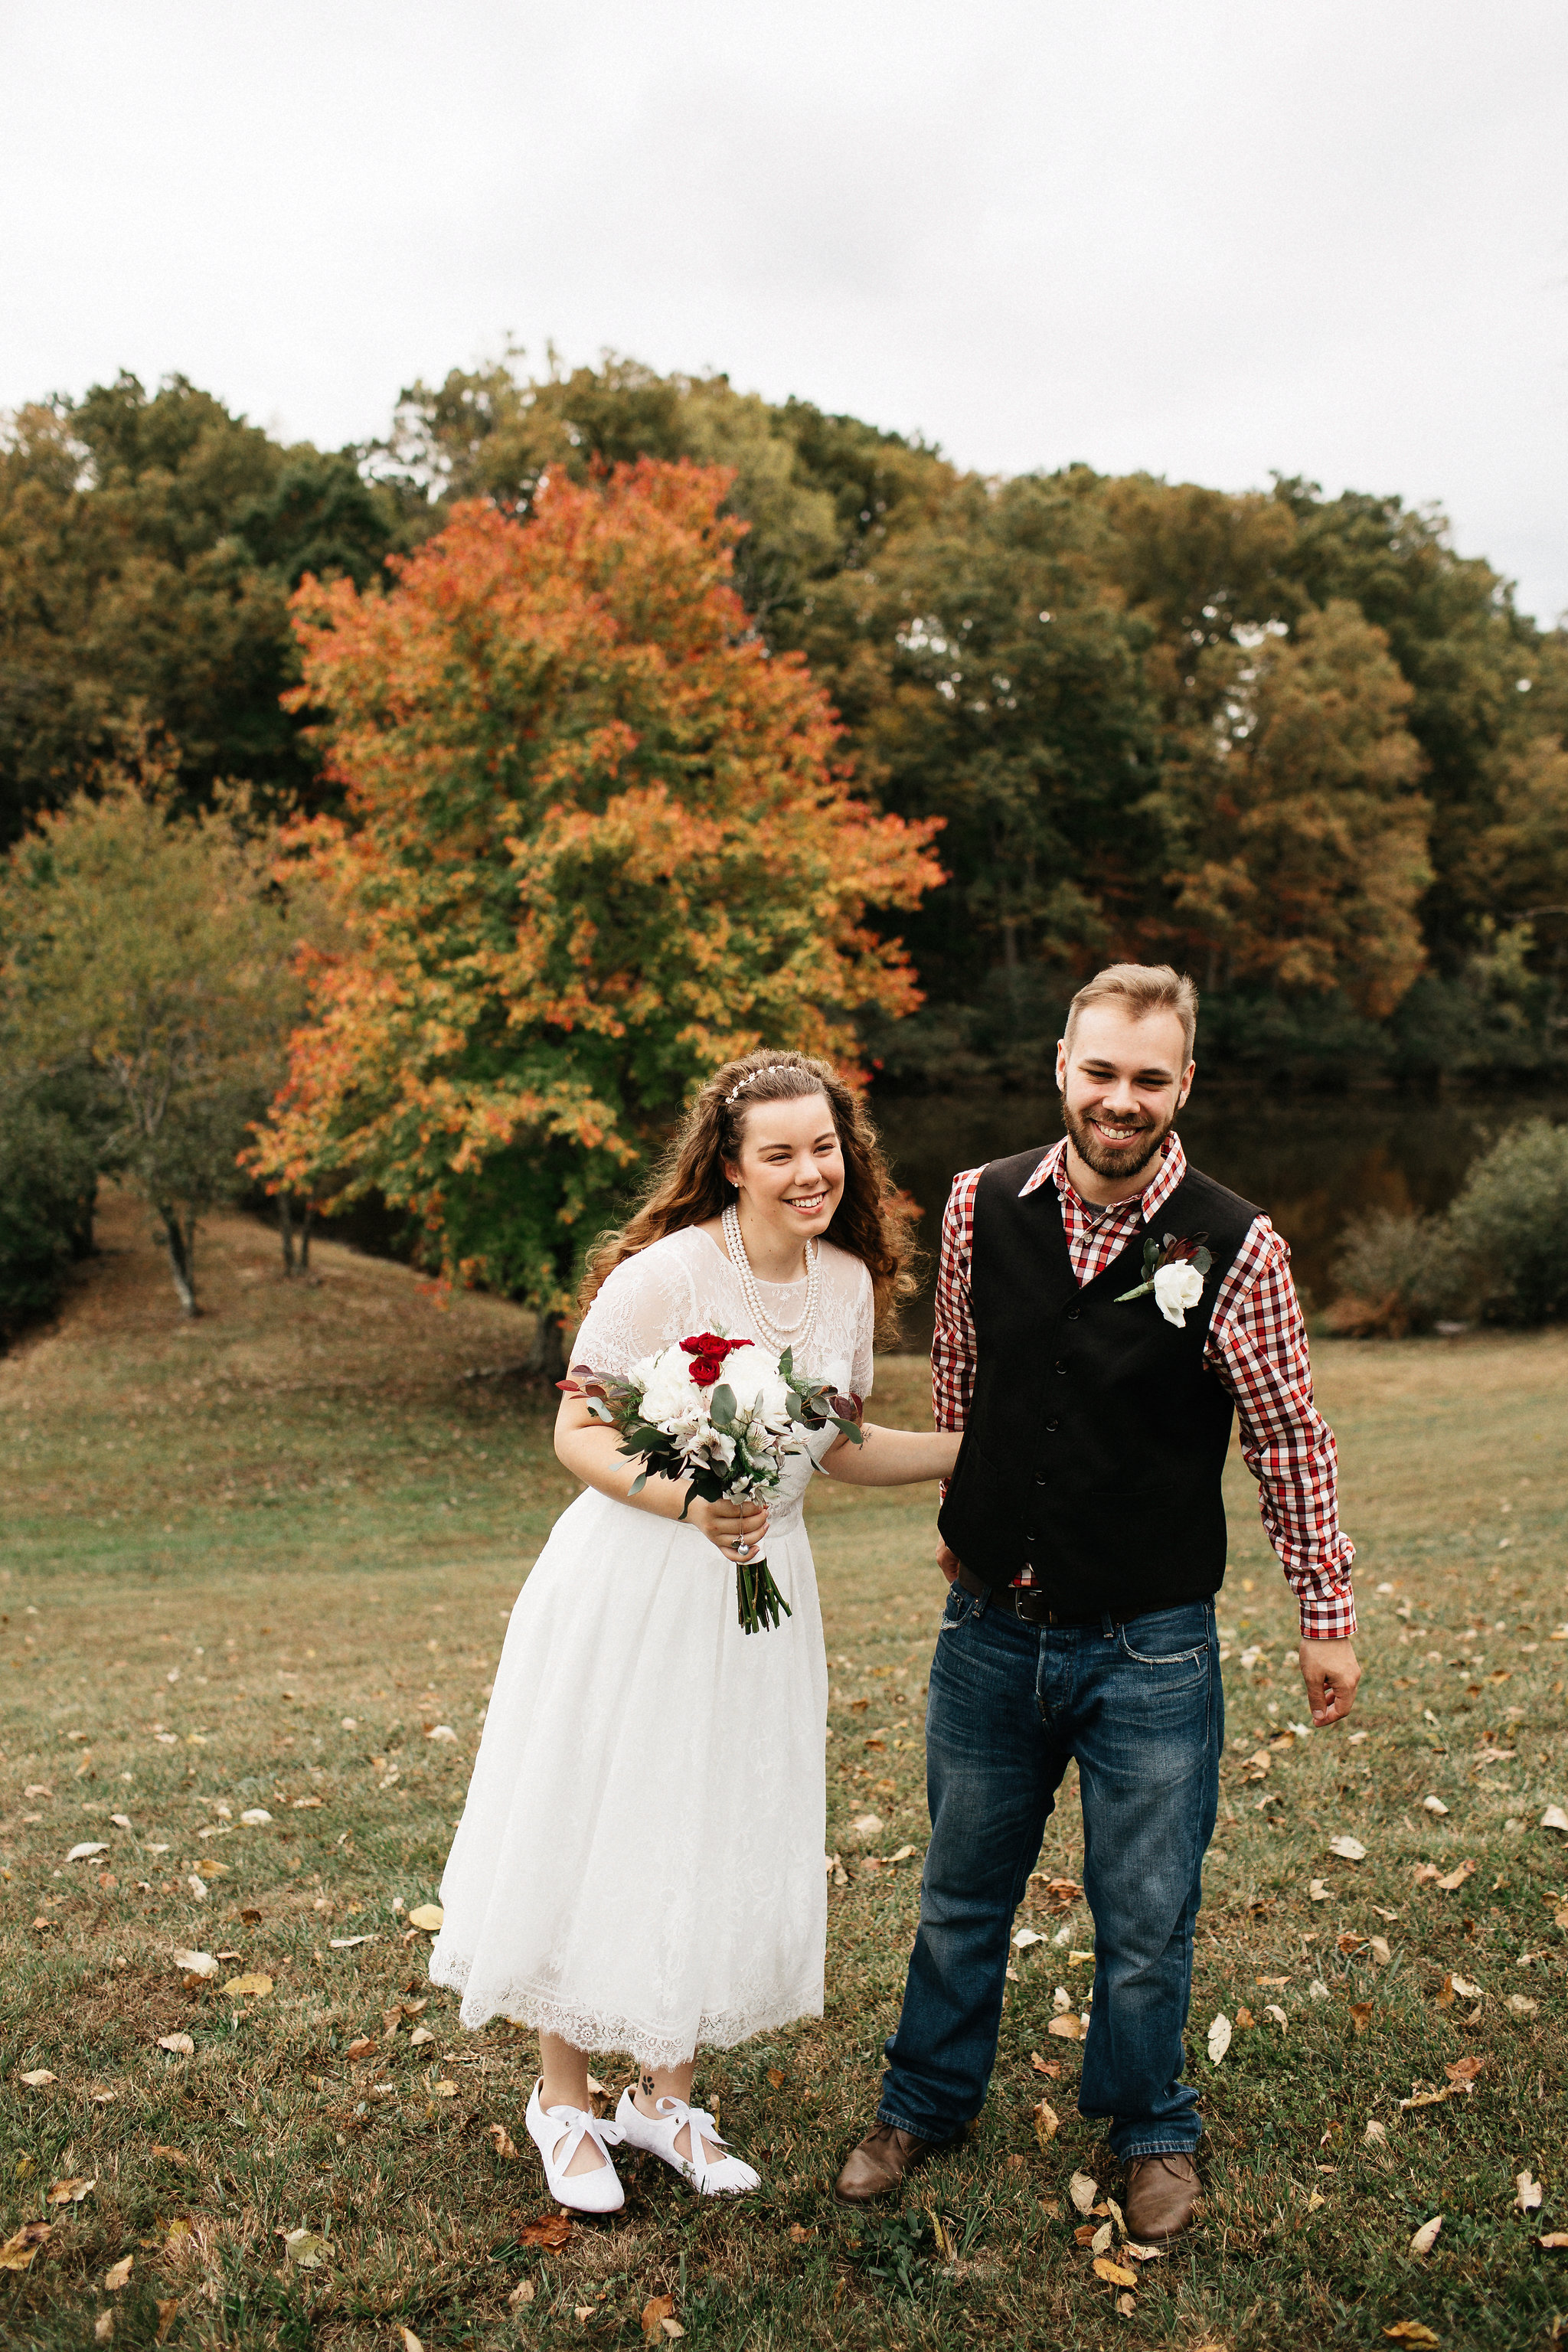 Caitlin&CodyMarried2017-11-03at19.19.39PM68.jpg